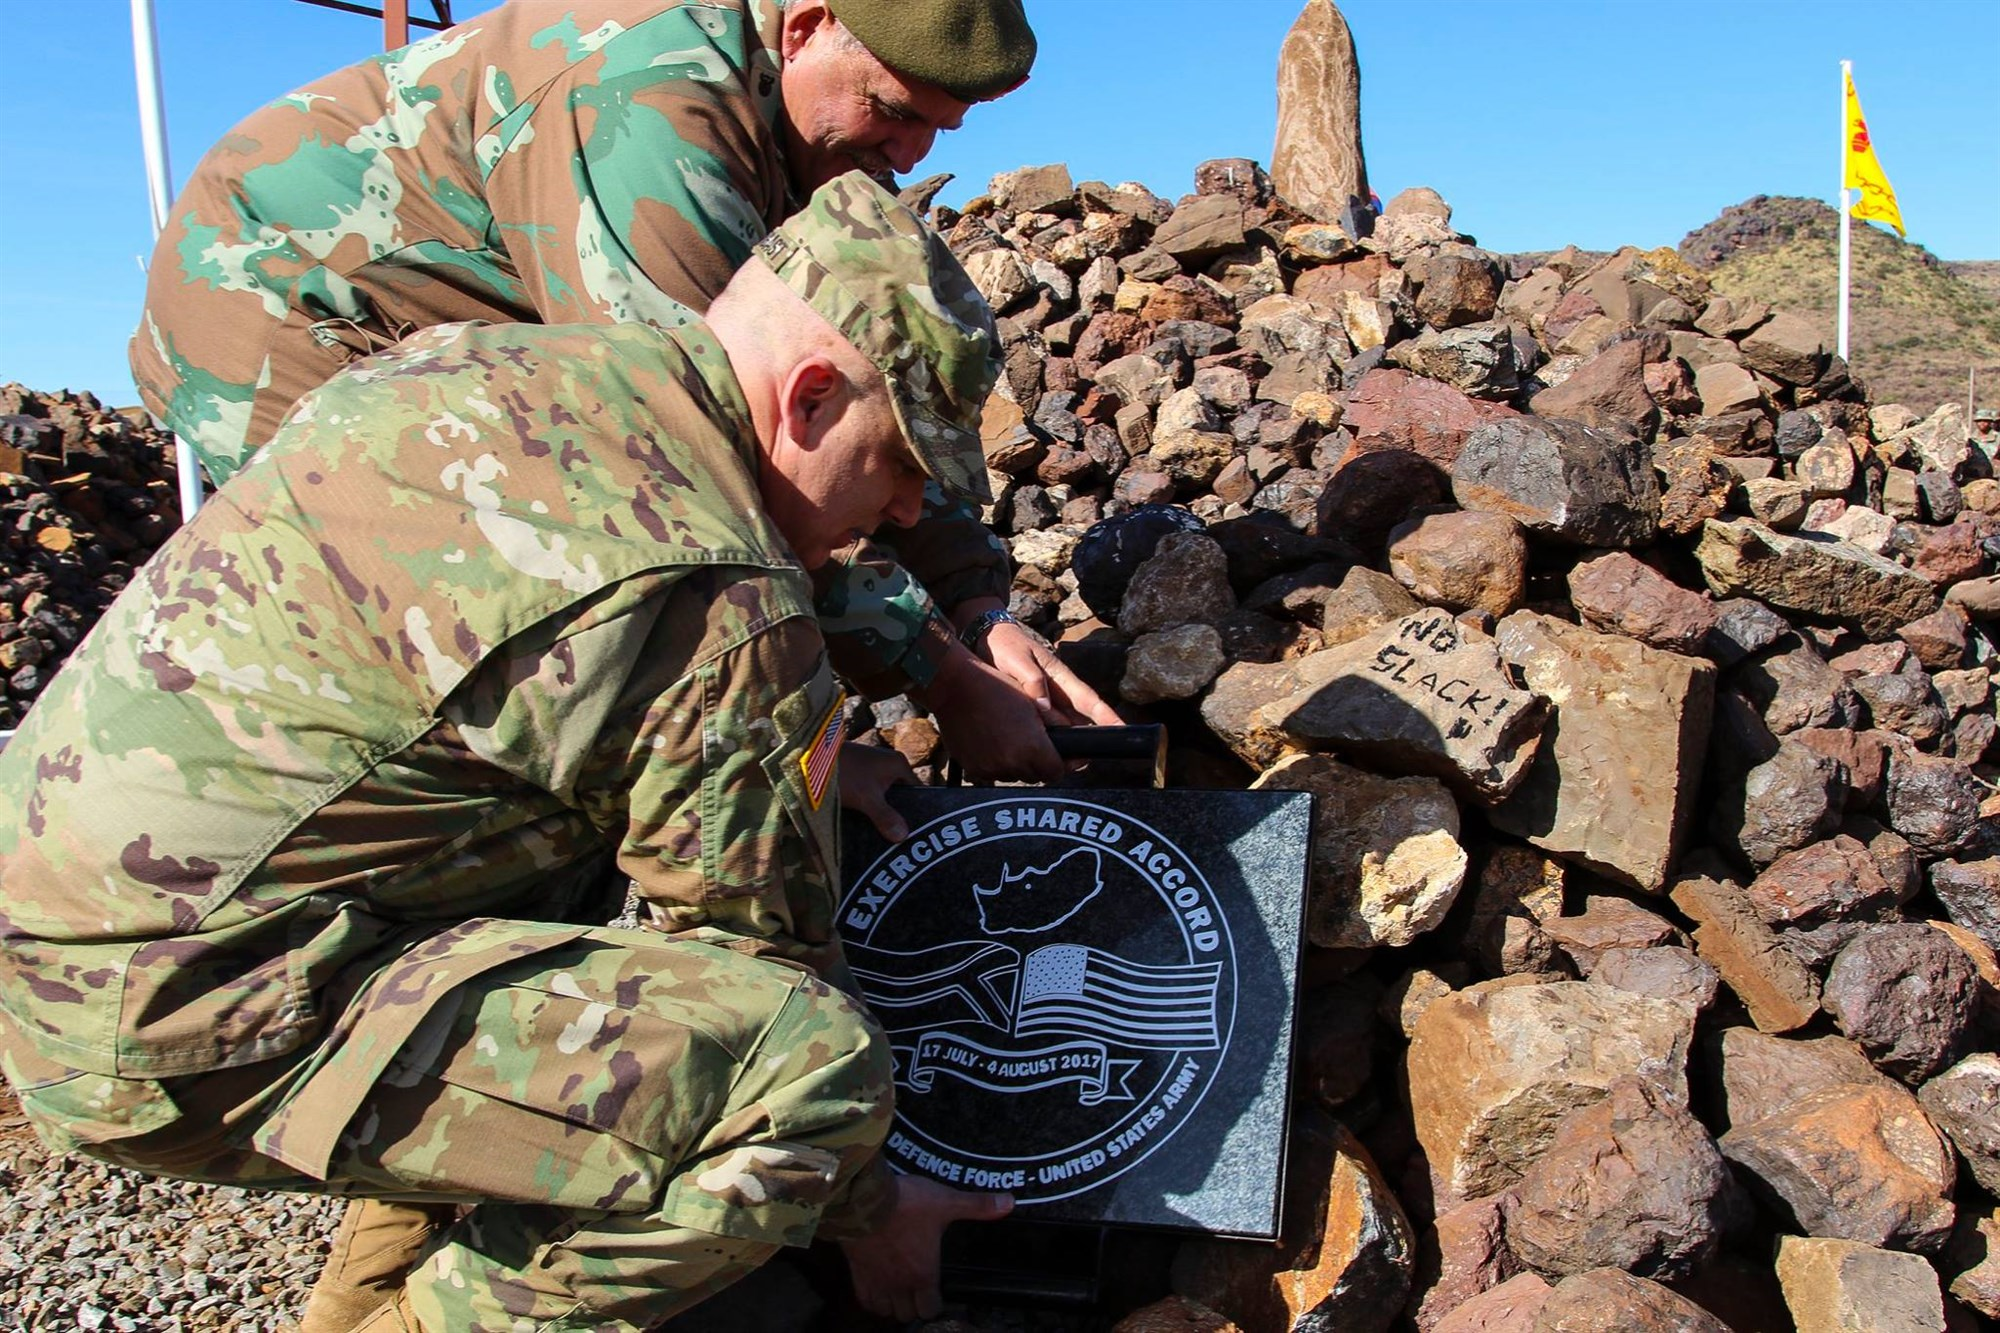 South African Army Brig. Gen. Gustav Lategan and Brig. Gen. William J.Prendergast, U.S. Army Africa Deputy Commanding General, places the final plaque on the pile of rocks signifying the pledge to train safely during Shared Accord 2017 at the South Africa Army Combat Training Center, July 17, 2017. SA17 is a Joint-Combined Command Post Exercise (CPX) and company field training exercise (FTX) focused on peace keeping operations designed to exercise participants' capability and capacity to conduct African Union/United Nations mandated peace keeping operations.